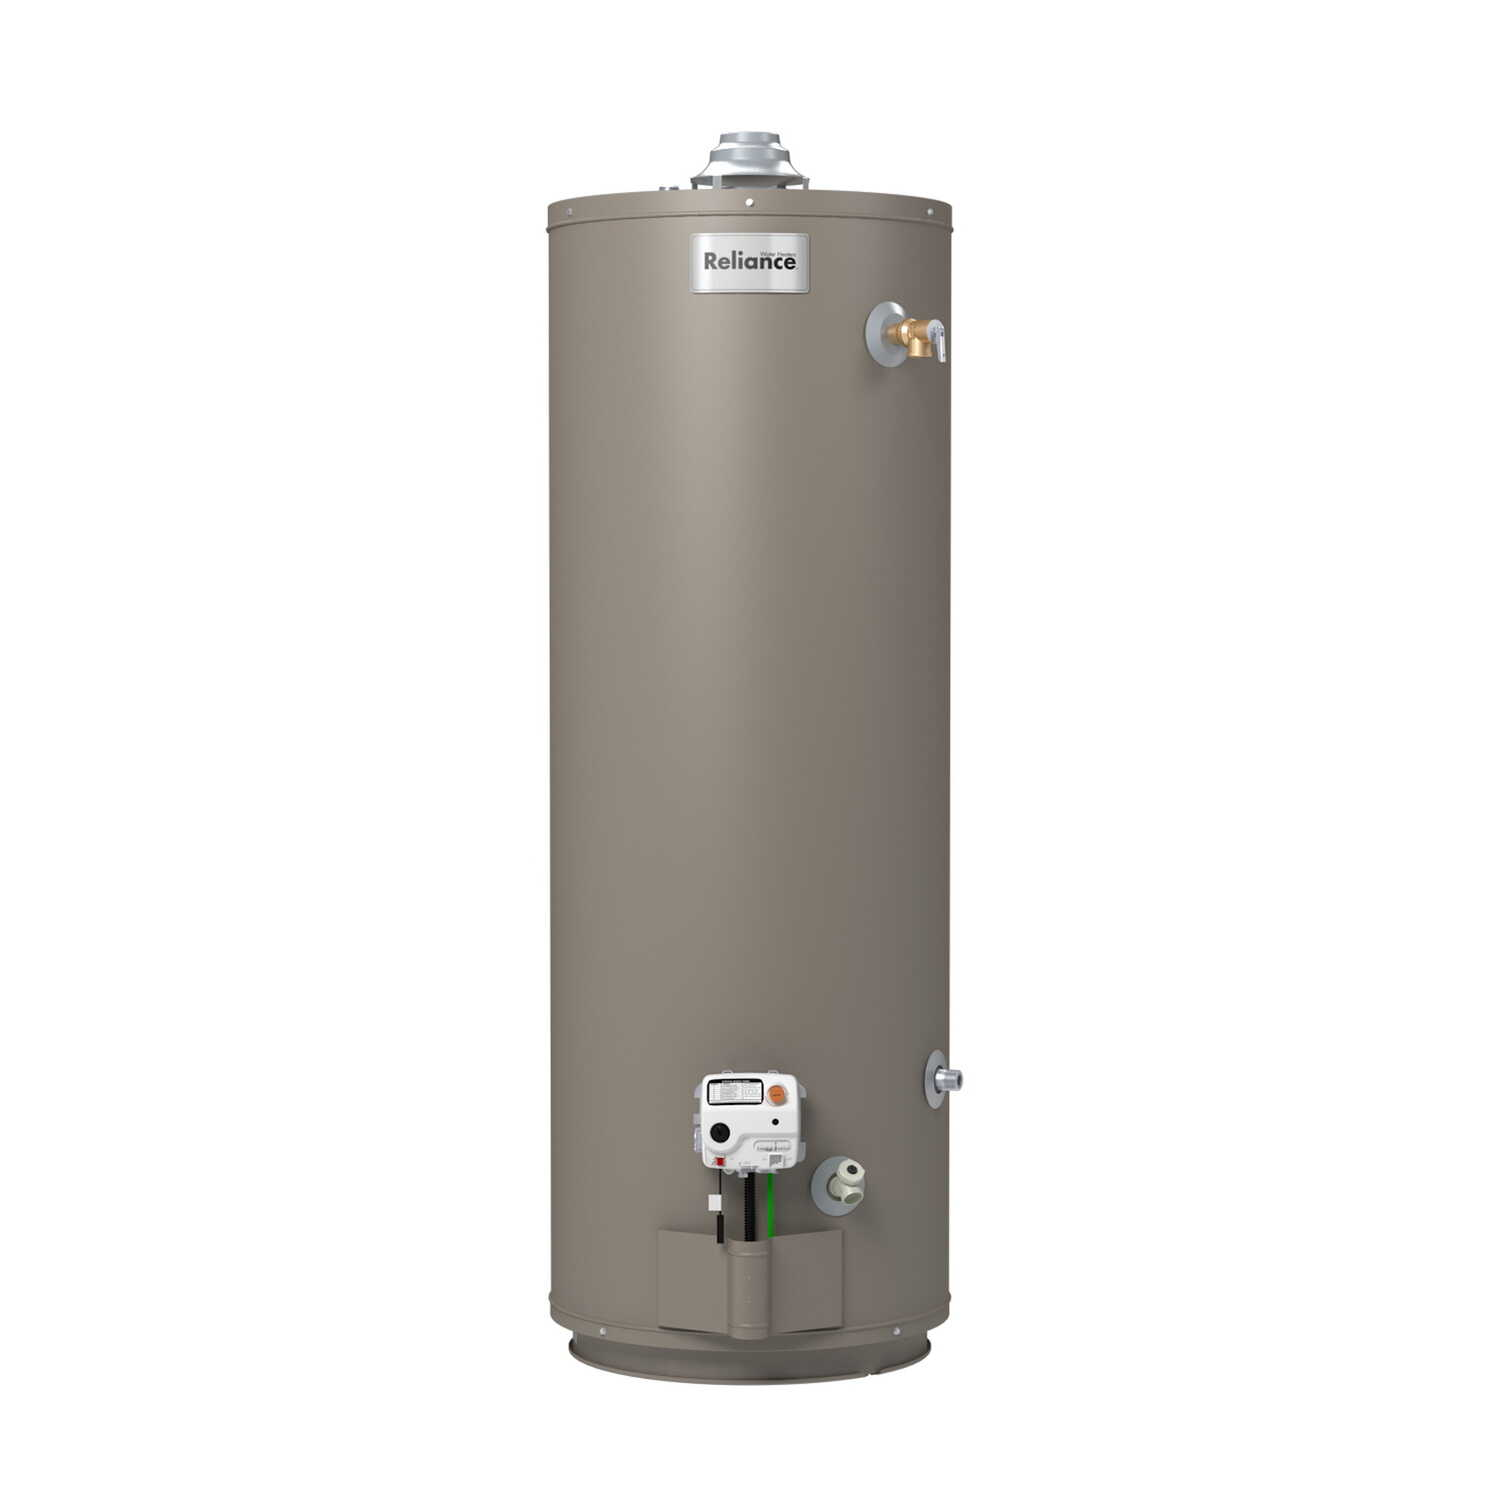 Reliance Natural Gas Propane Mobile Home Water Heater 61 3